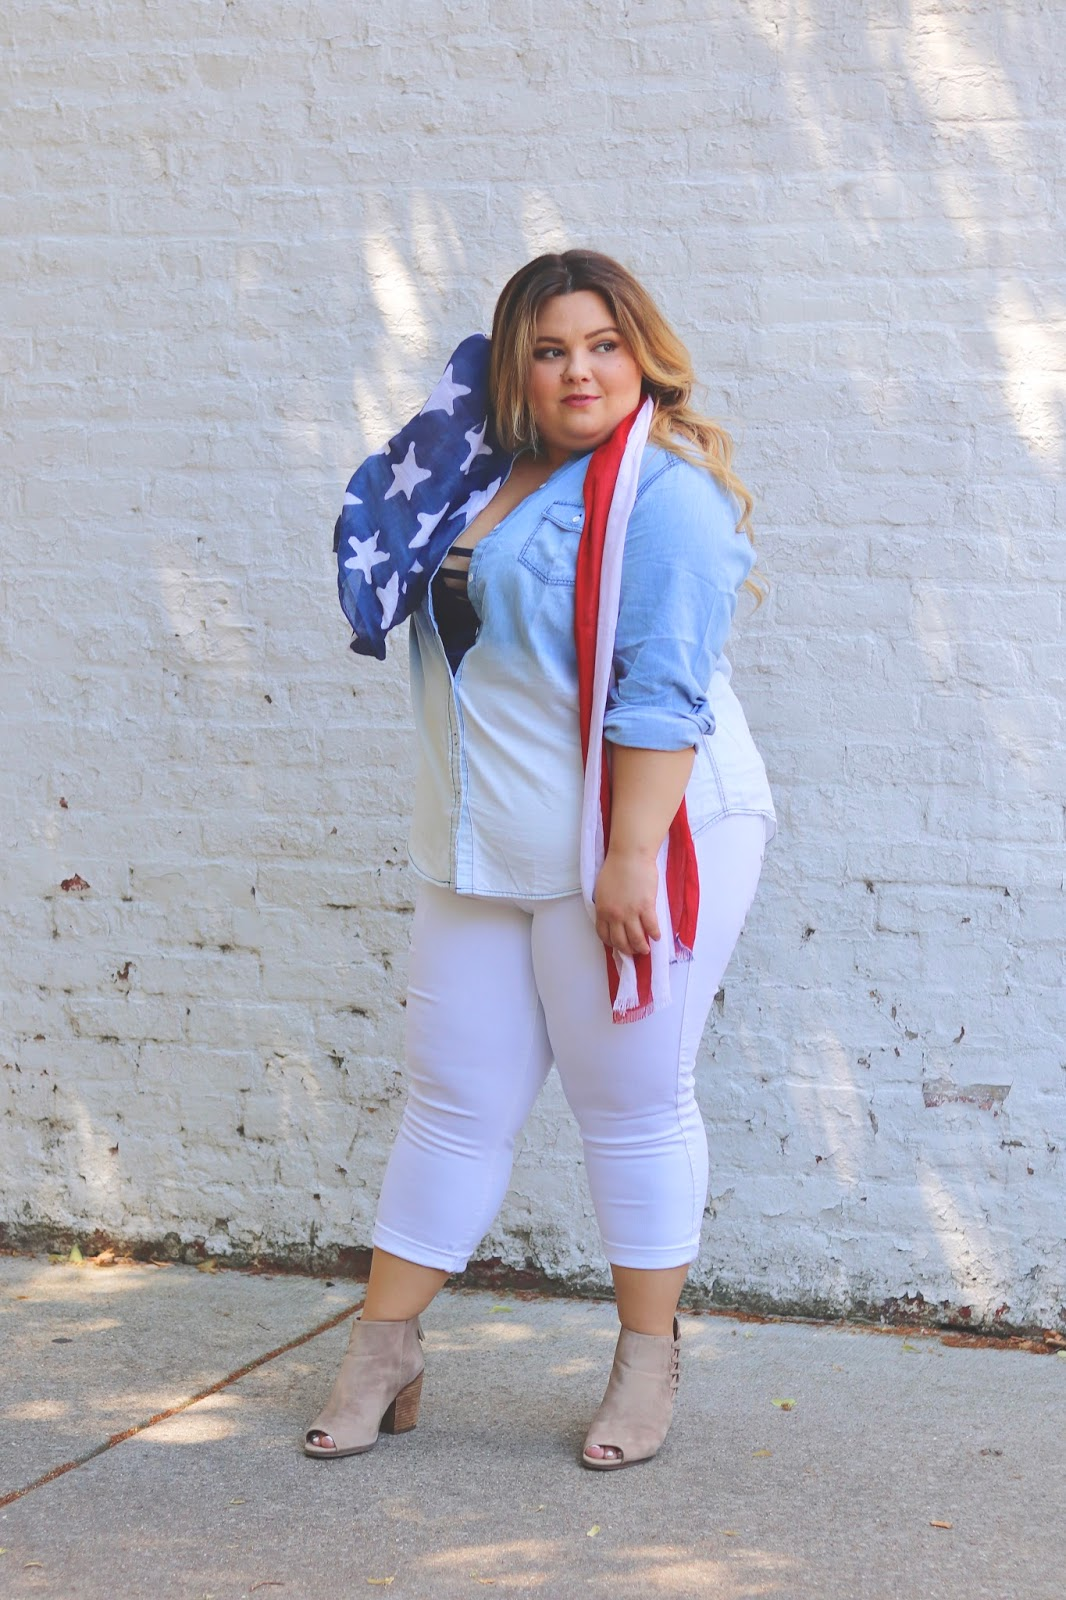 natalie craig, Natalie in the city, fourth of July outfits, 4th of July fashion, torrid, blogger review, summer fashion trends, American flag, fatshion, plus size fashion blogger, Chicago blogger, midwest blogger, curves and confidence, affordable plus size clothing, chambray, plus size white denim